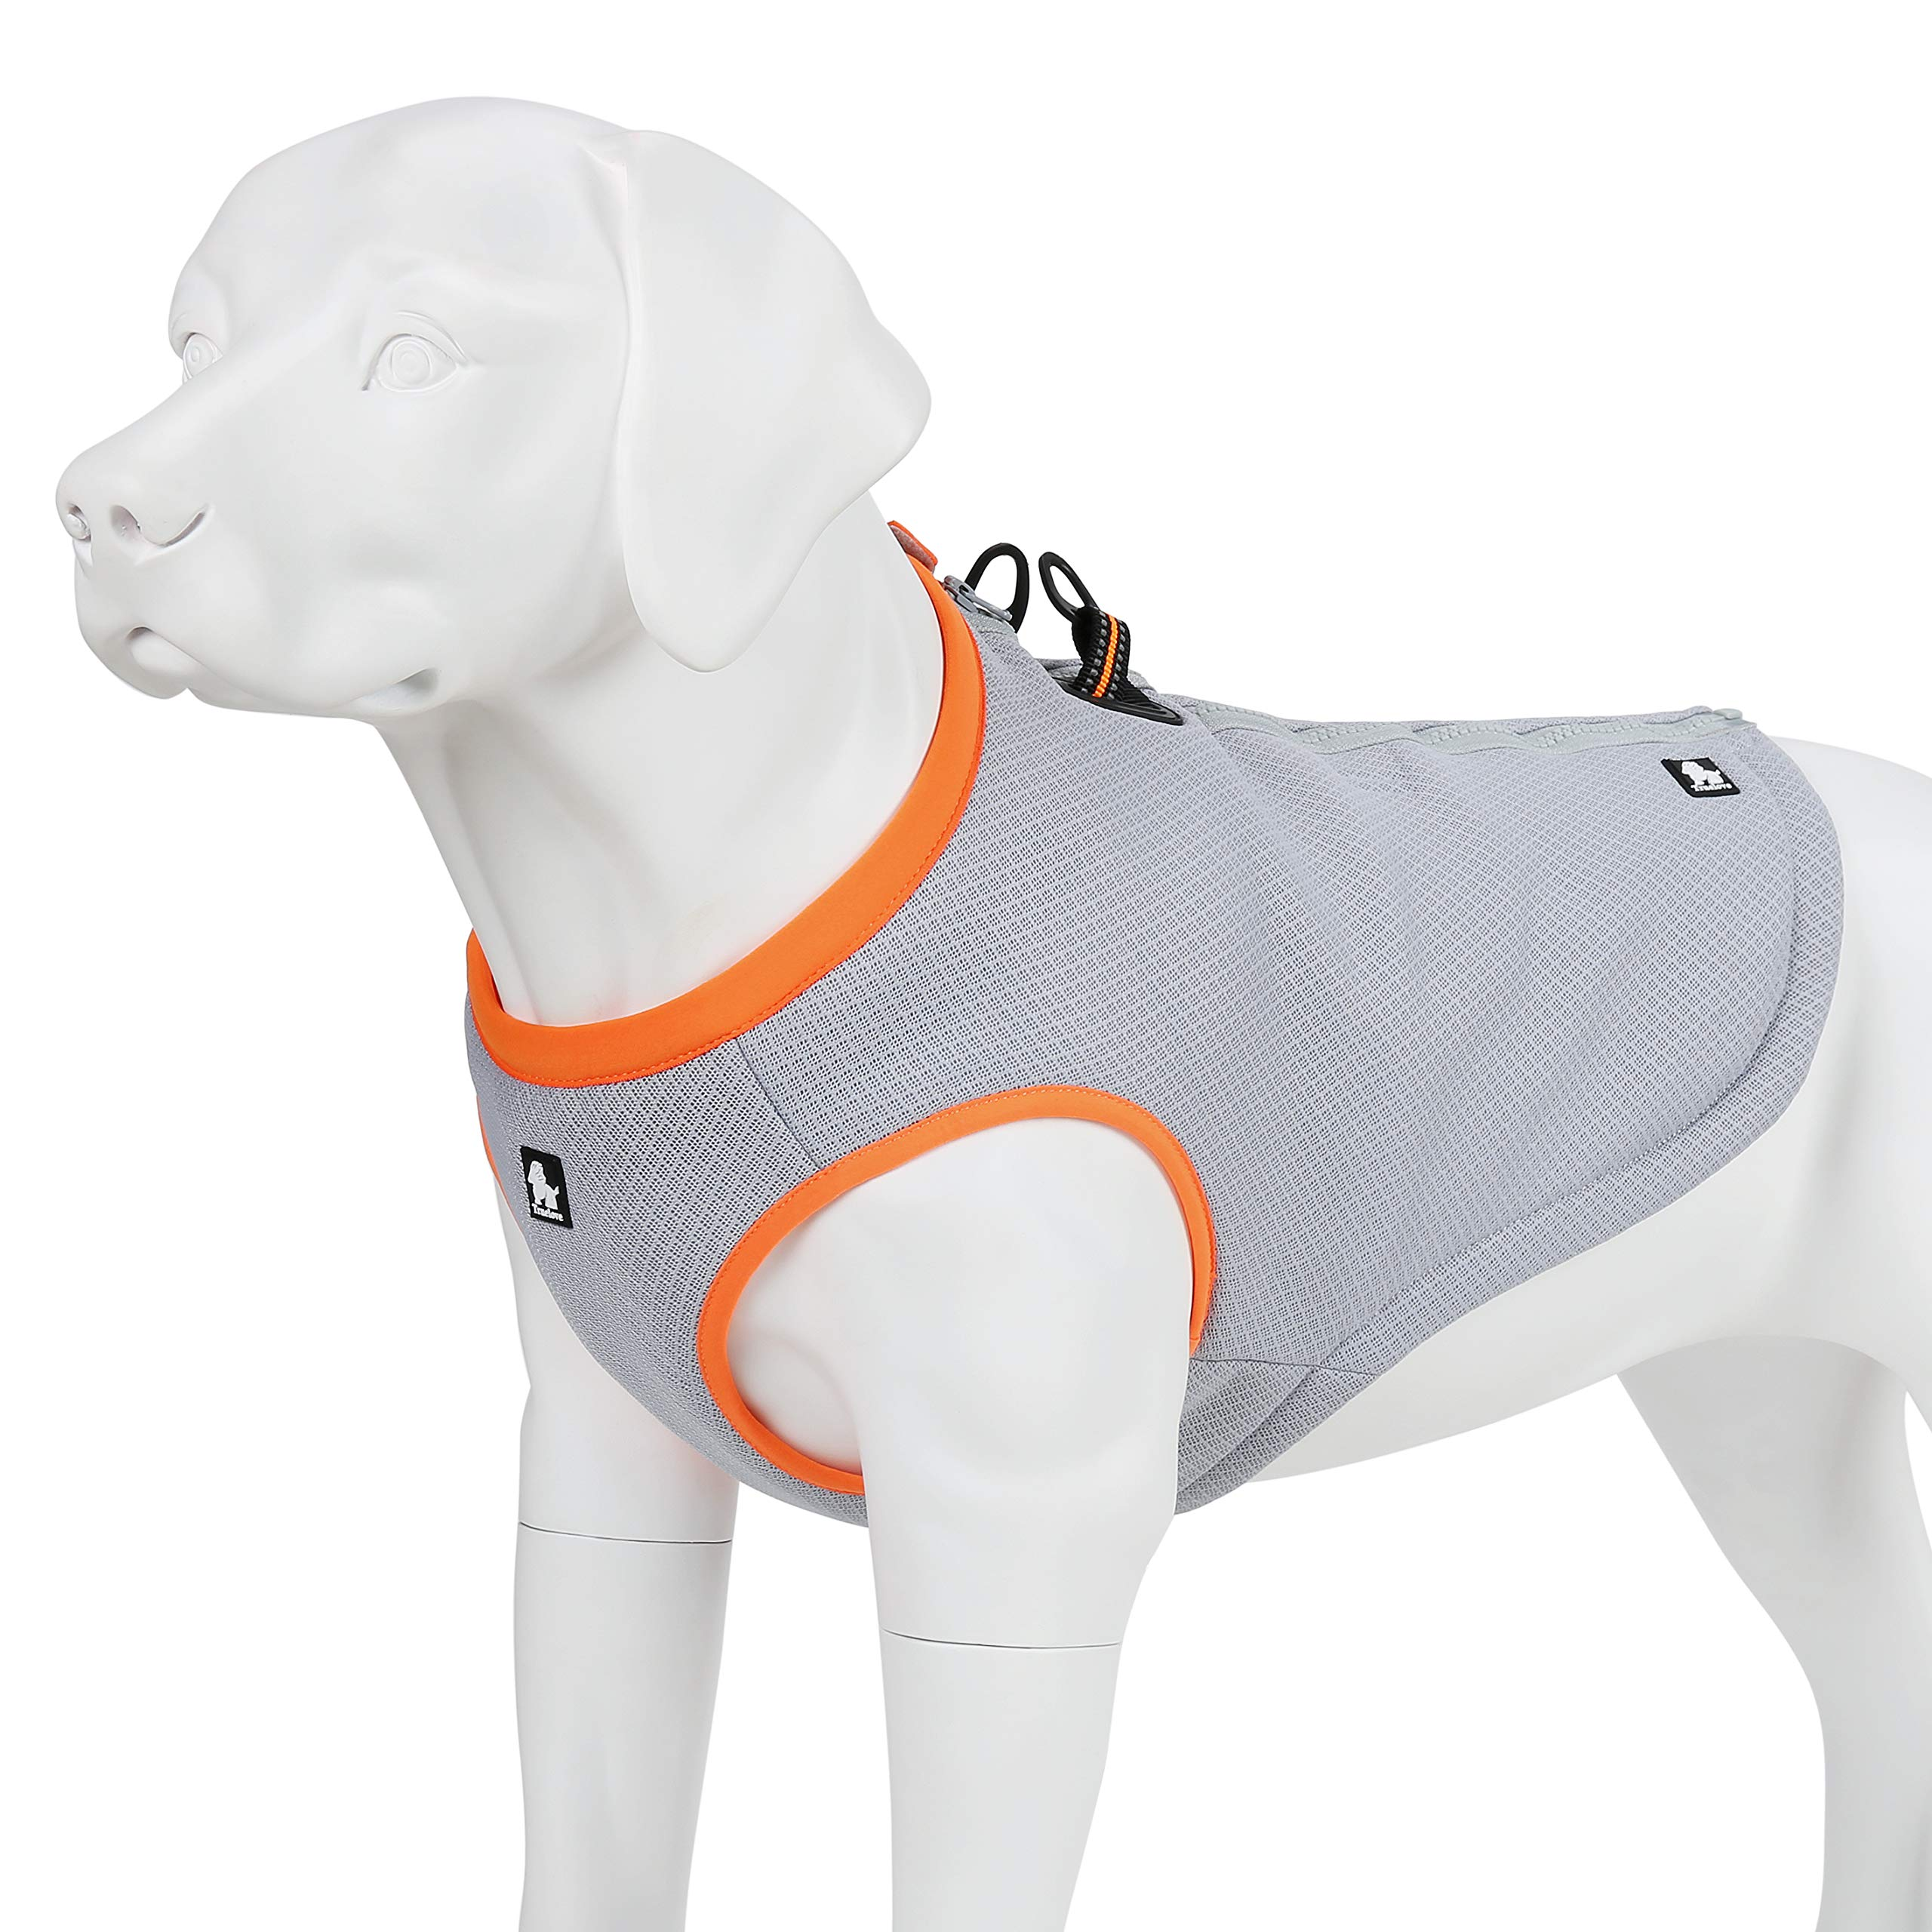 juxzh Truelove Dog Cooling Vest Harness Cooler Jacket with Adjustable Zipper for Outdoor Hunting Training and Camping by juxzh